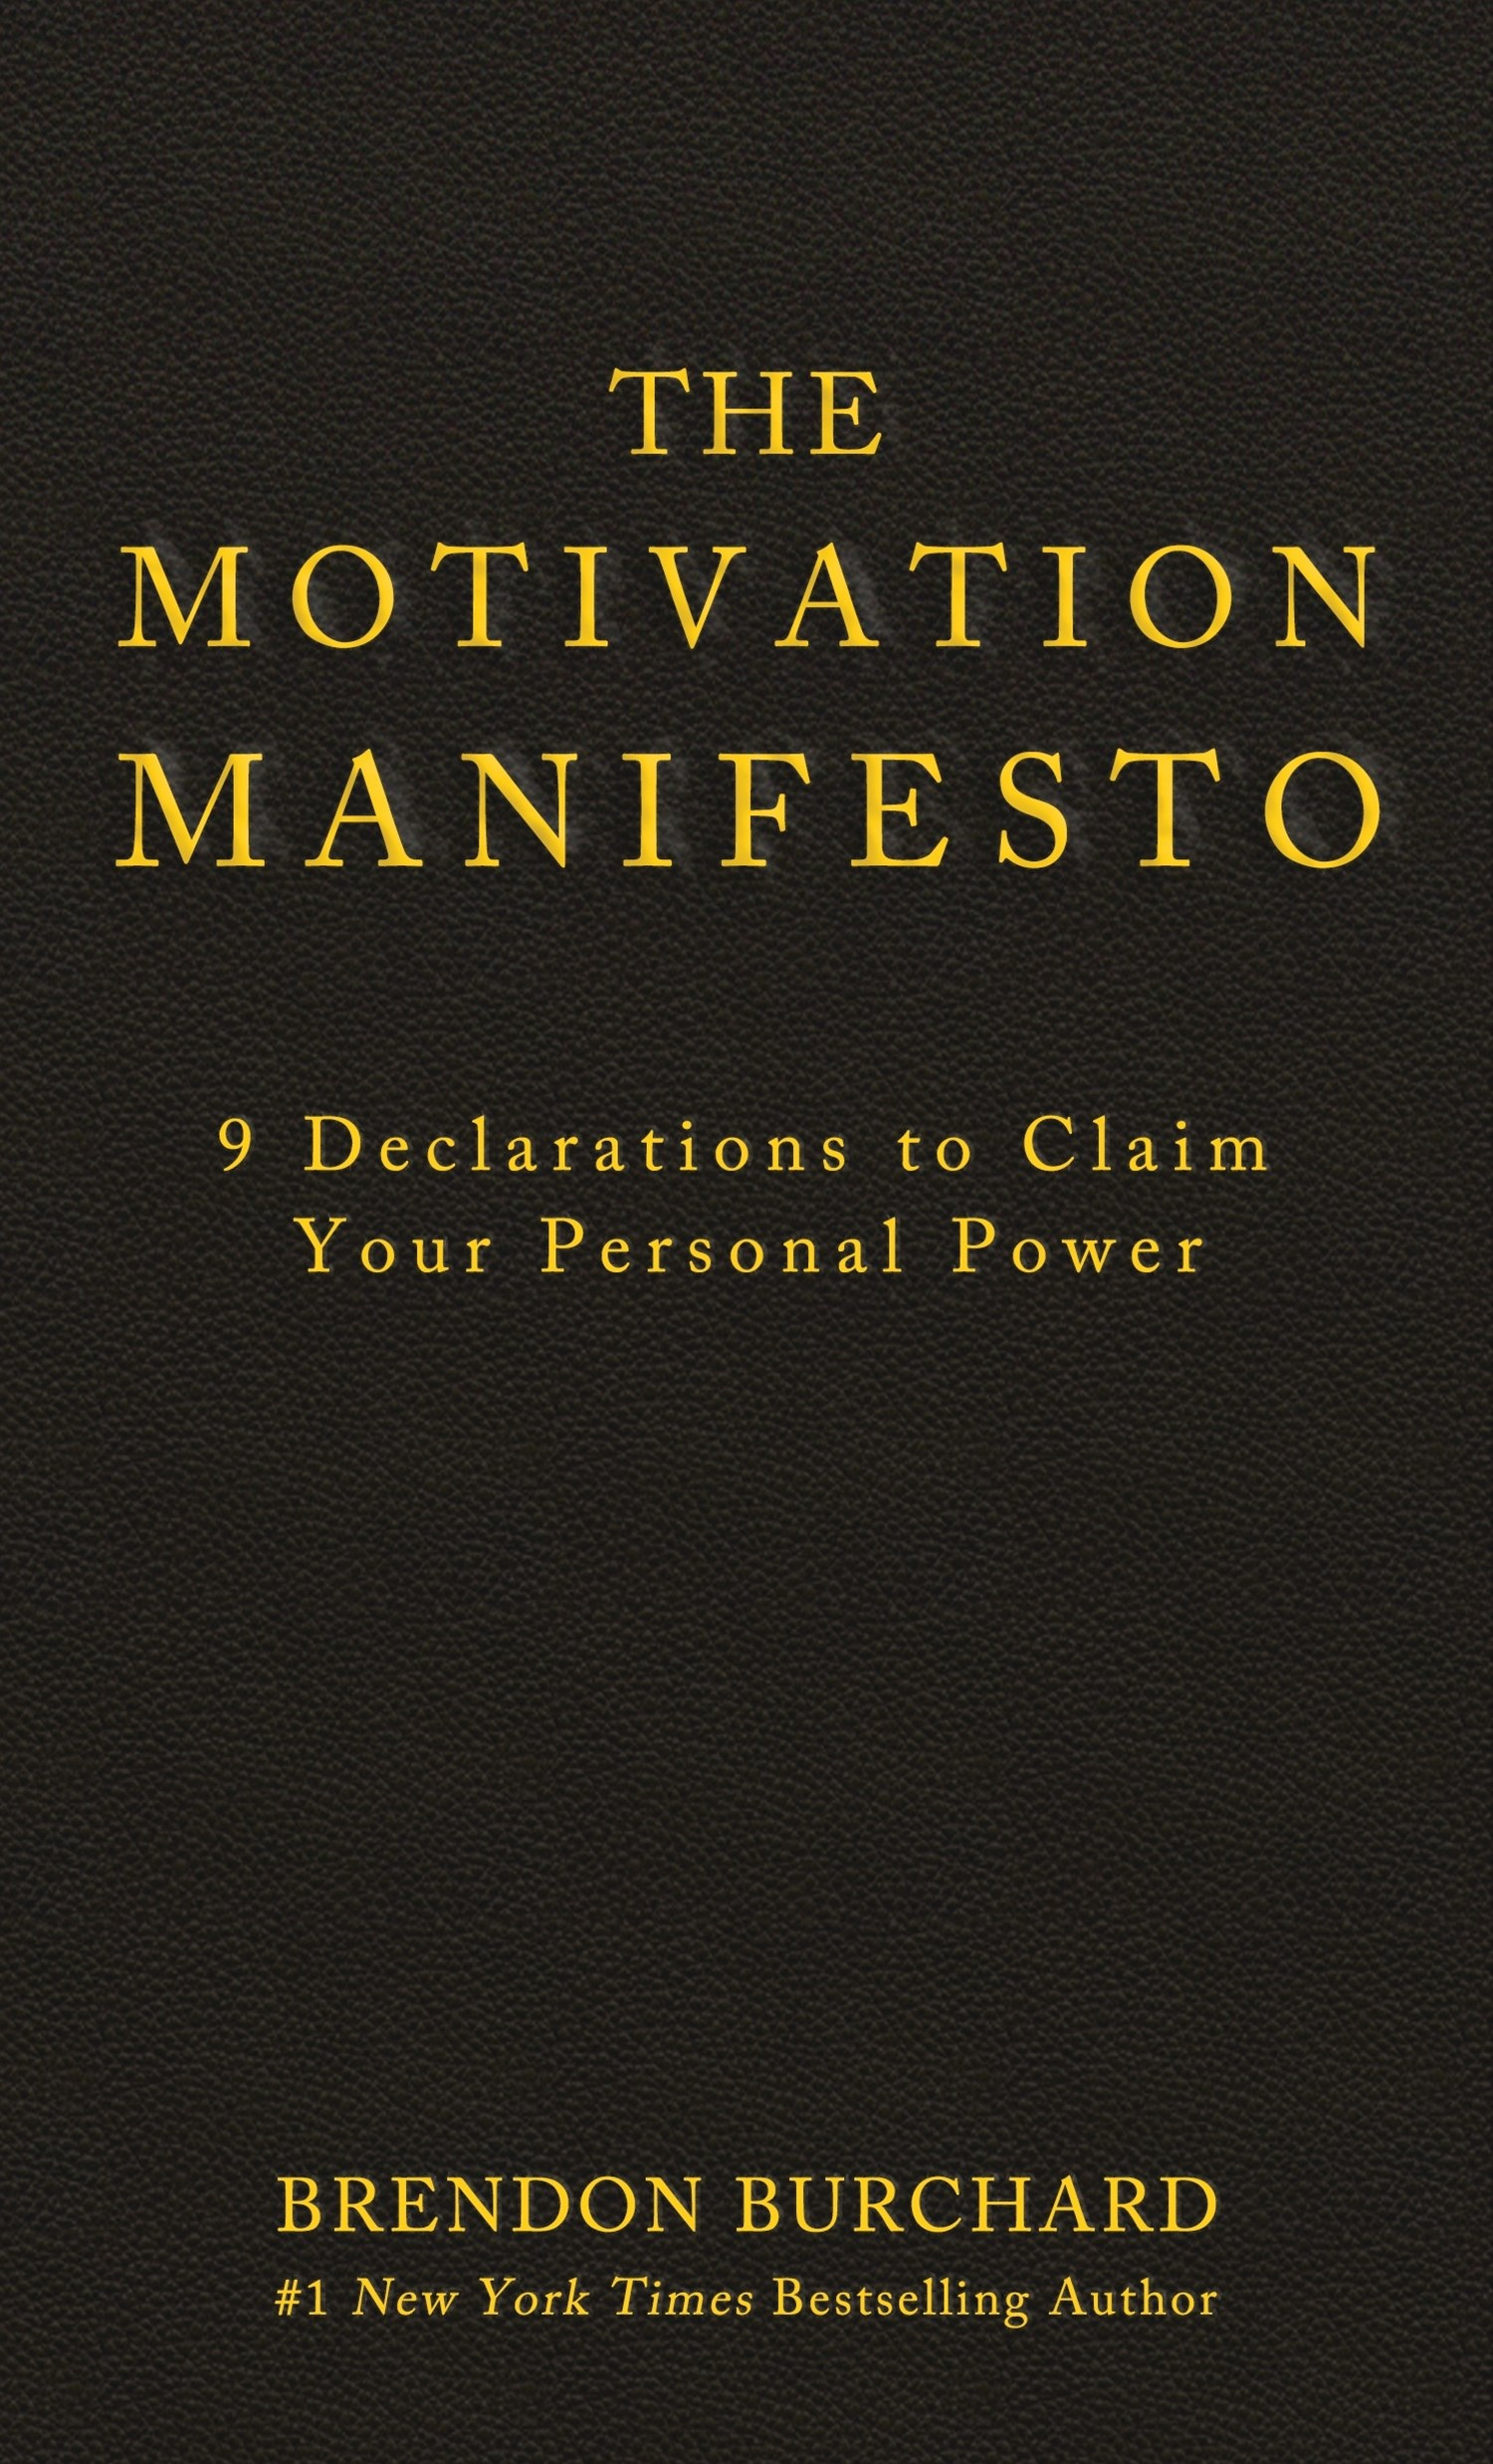 Motivation Manifesto: 9 Declarations To Claim Your PersonalPower